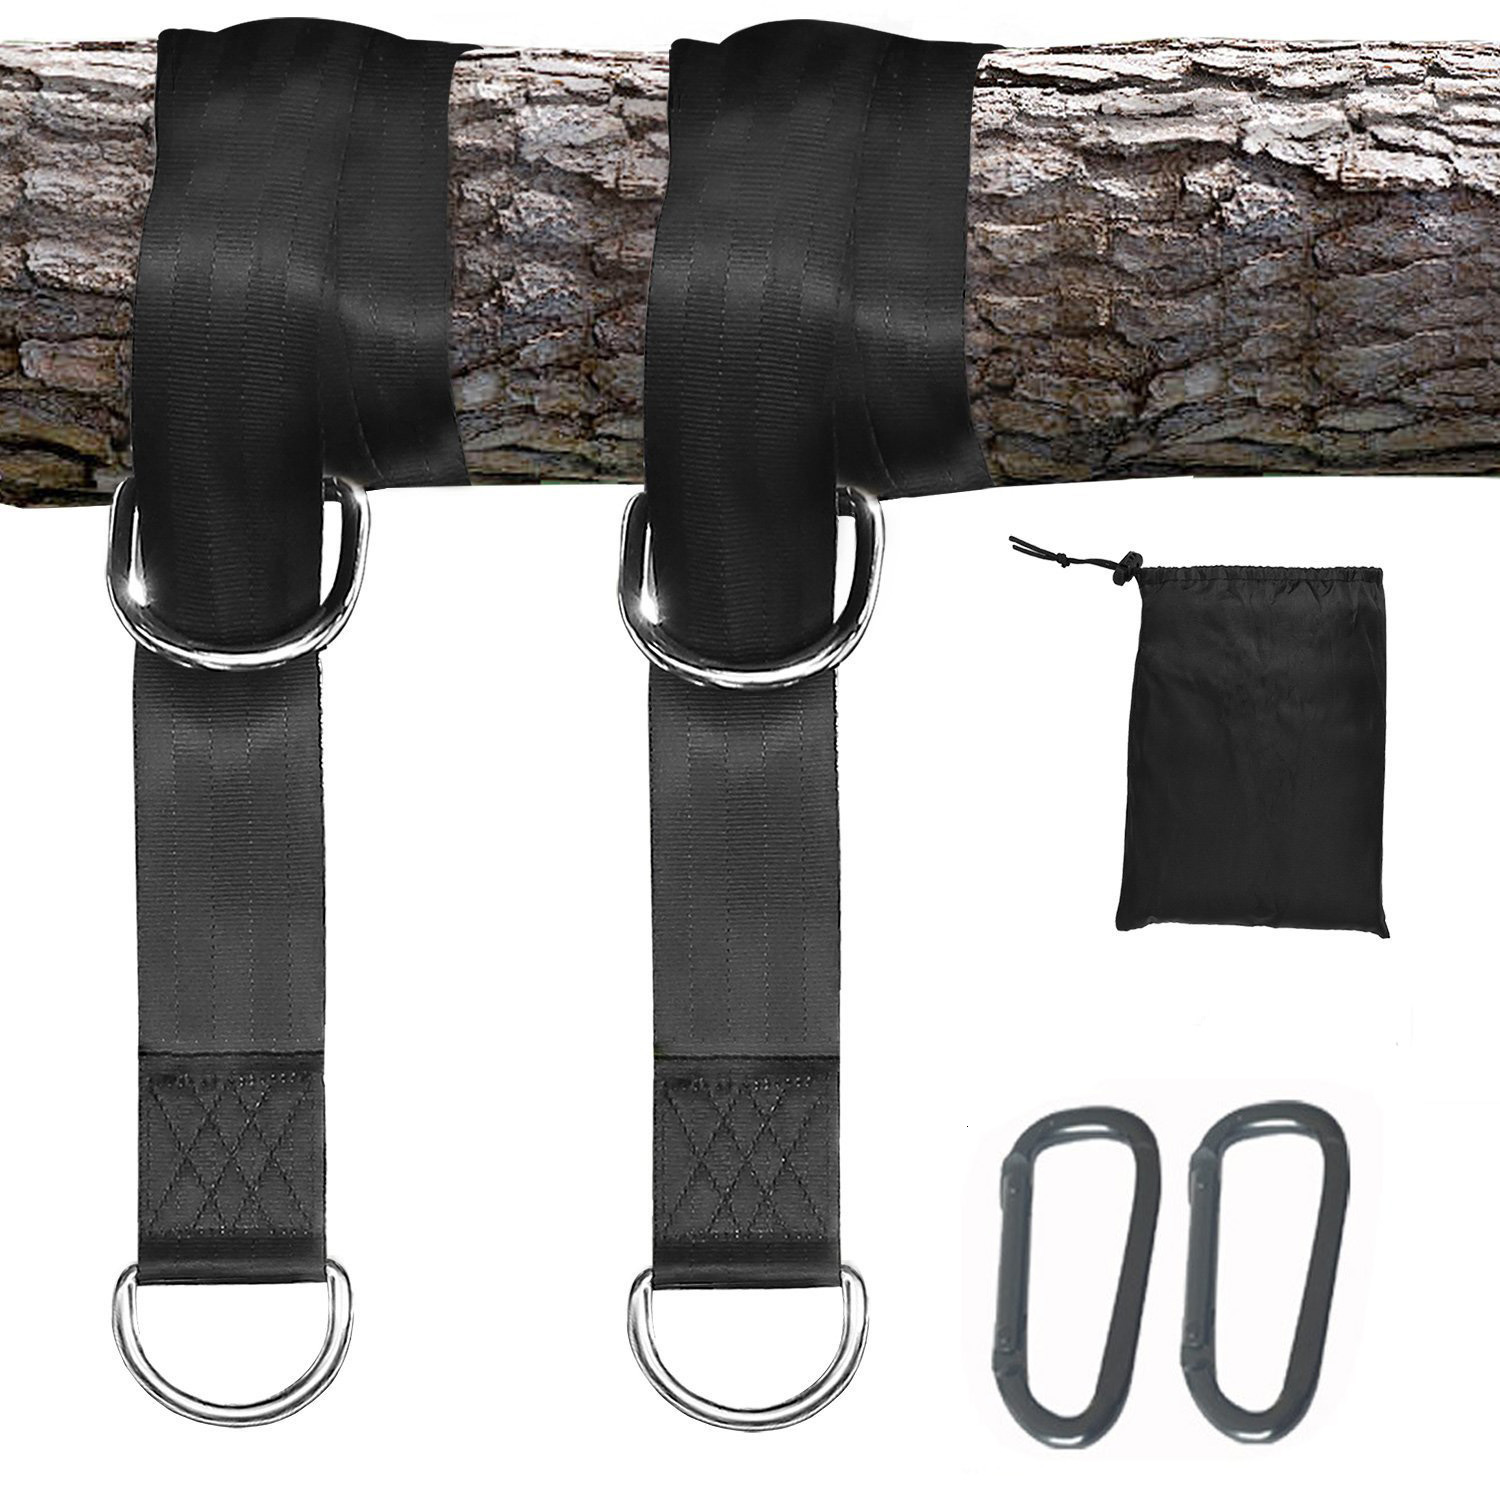 Outdoors Hammock Bandage 5*150cm Camping Hiking Hanging Kit Hammock Straps Rope Children Swing Belt